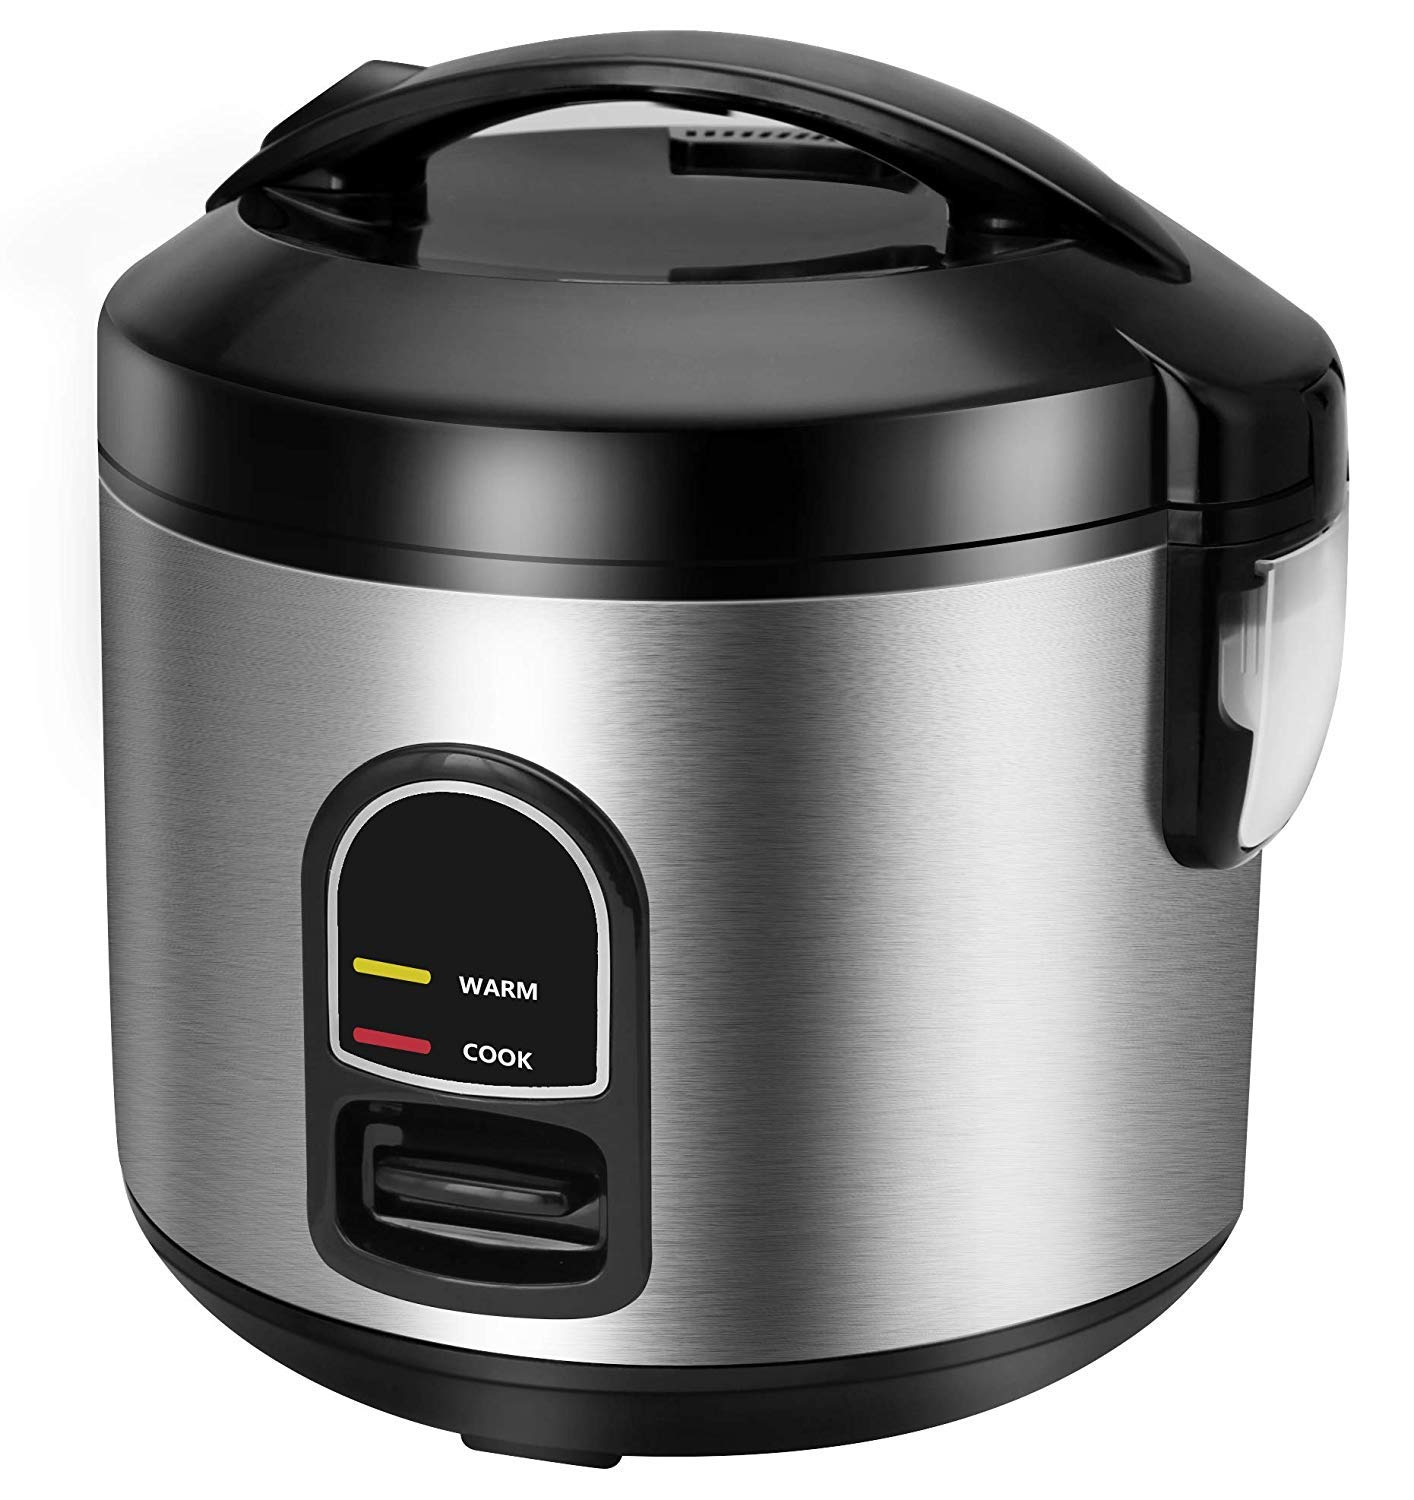 Electric Rice Cooker Food Steamer, CUSINAID Smart 10 cup Rice Cooker Steamer with Automatic Keep Warm Function, Perfect for Soups, Stews, Grains Oatmeal 1.8 Liters